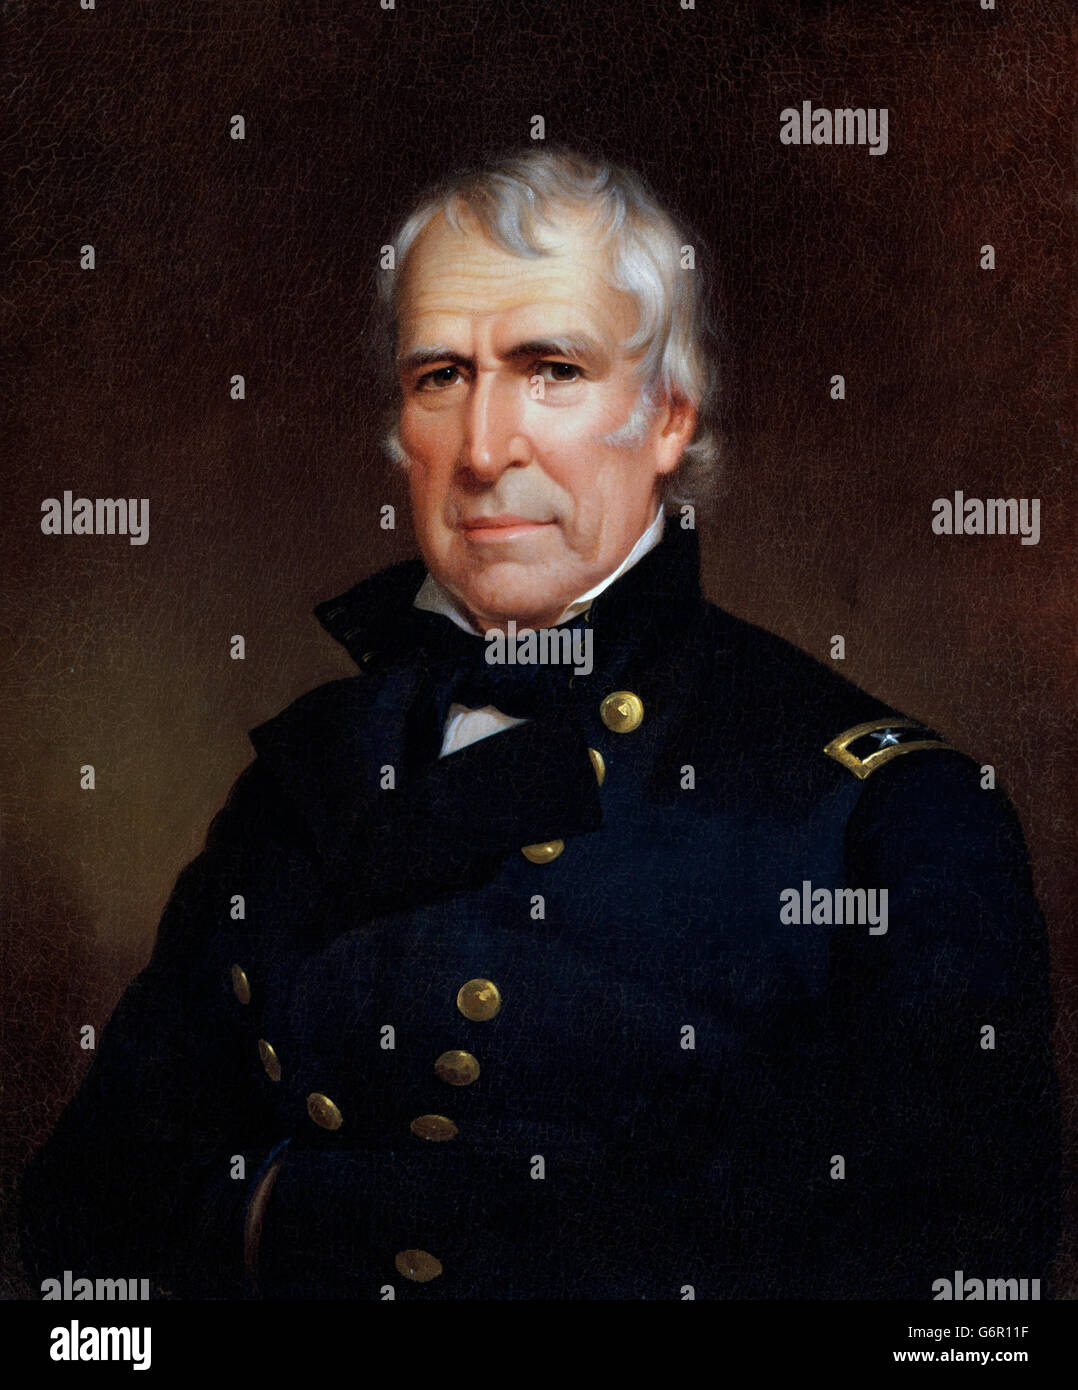 Zachary Taylor. Portrait of the 12th US President Zachary Taylor (1784-1850) by James Reid Lambdin, 1848 - Stock Image